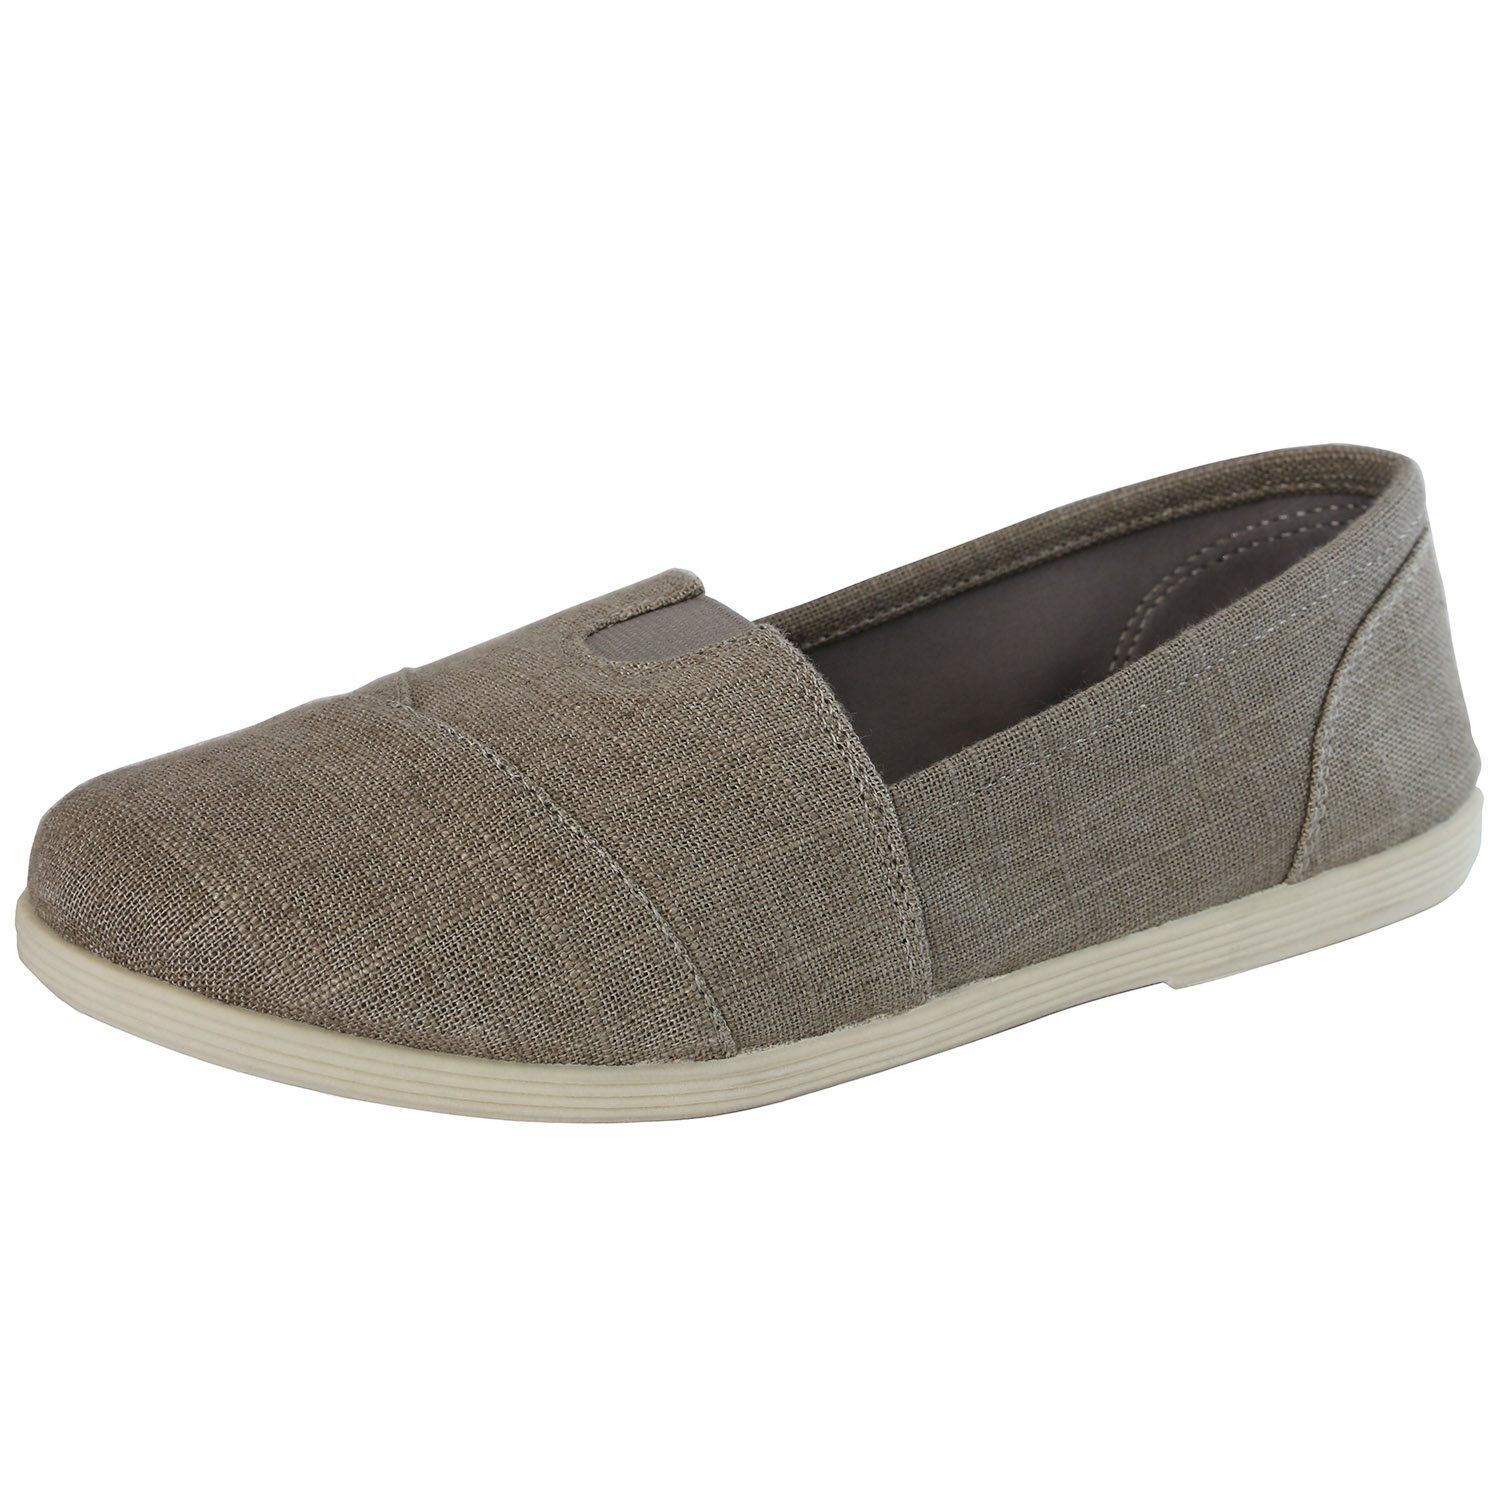 DailyShoes Women's Extra Cushioned Casual Flats - Ultra Breathable - Slip Resistant - Perfect Daily Shoes Slip-On Working Sneaker Shoes, Charcoal Linen, 7 B(M) US